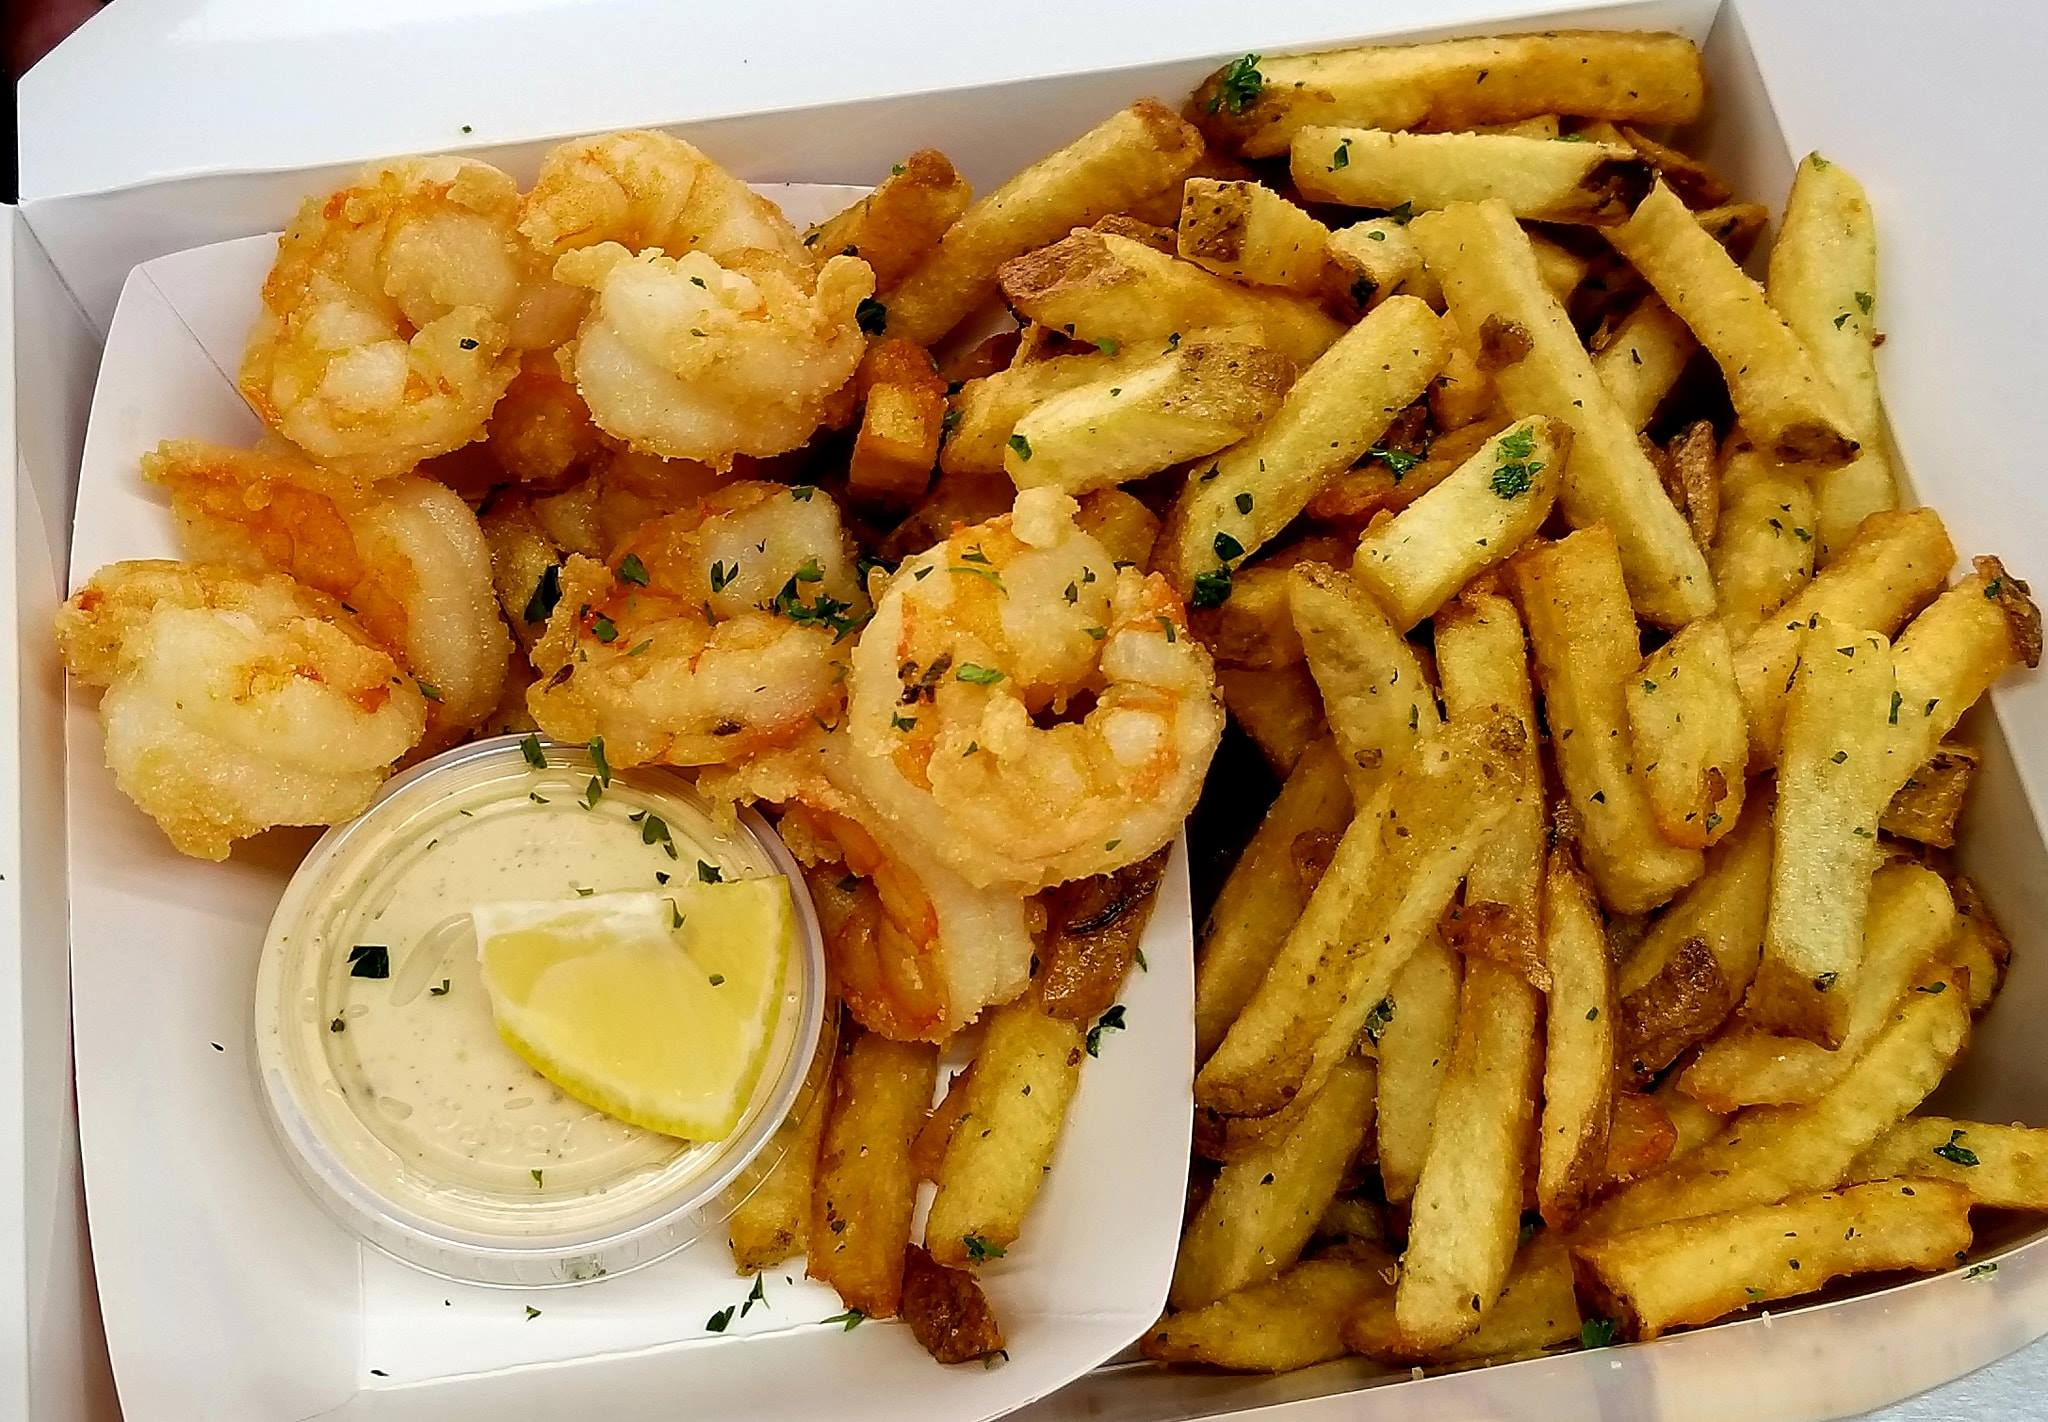 Shrimp and fries from Beaux Seafood